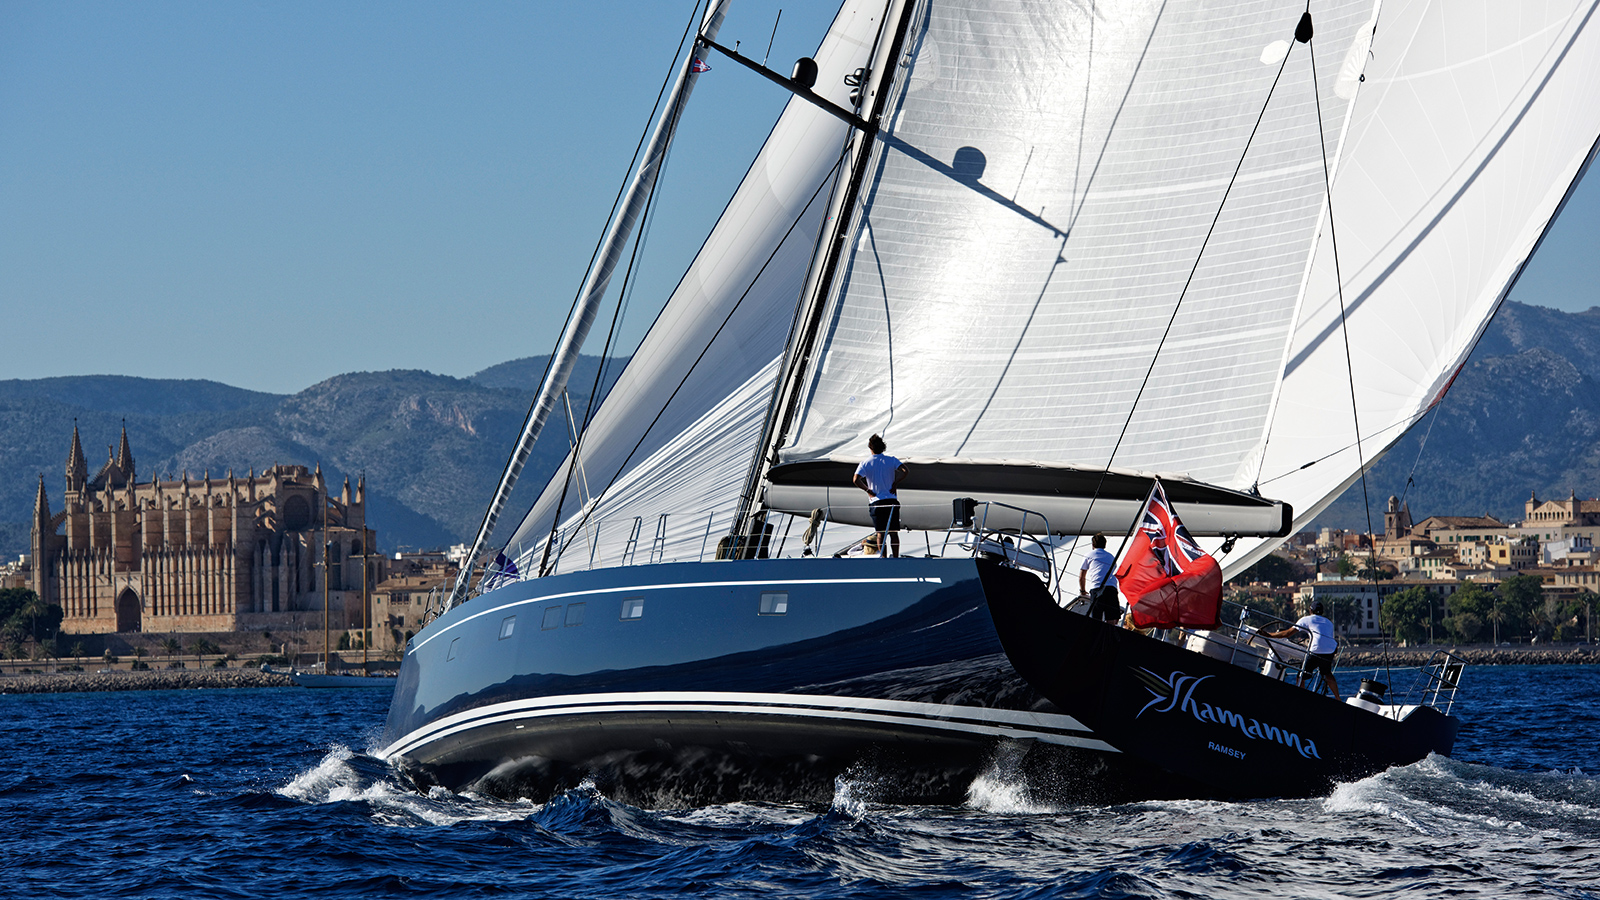 aft-view-of-the-nautors-swan-115-fd-sailing-yacht-shamanna